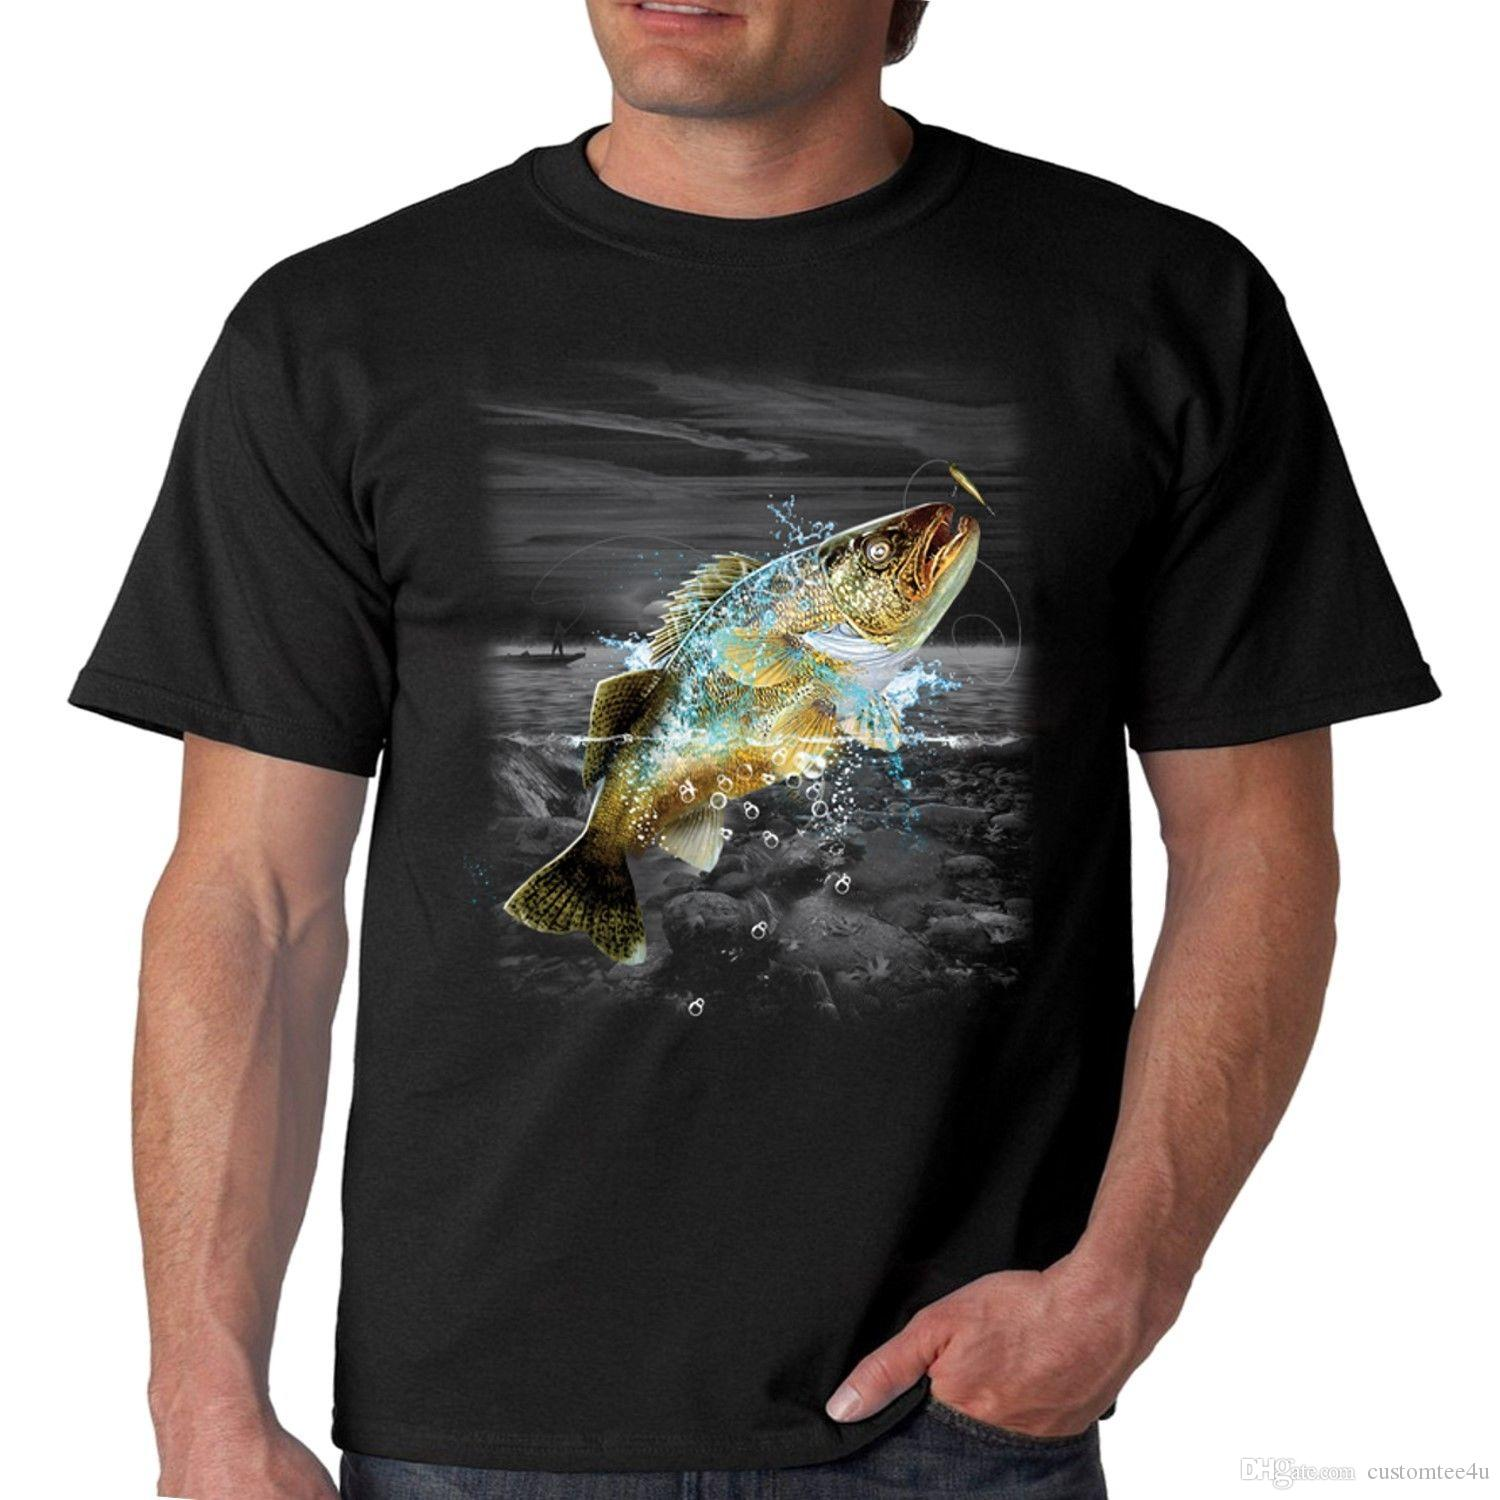 Grosshandel Angeln T Shirt Walleye Wilderness T Shirt Fur Manner